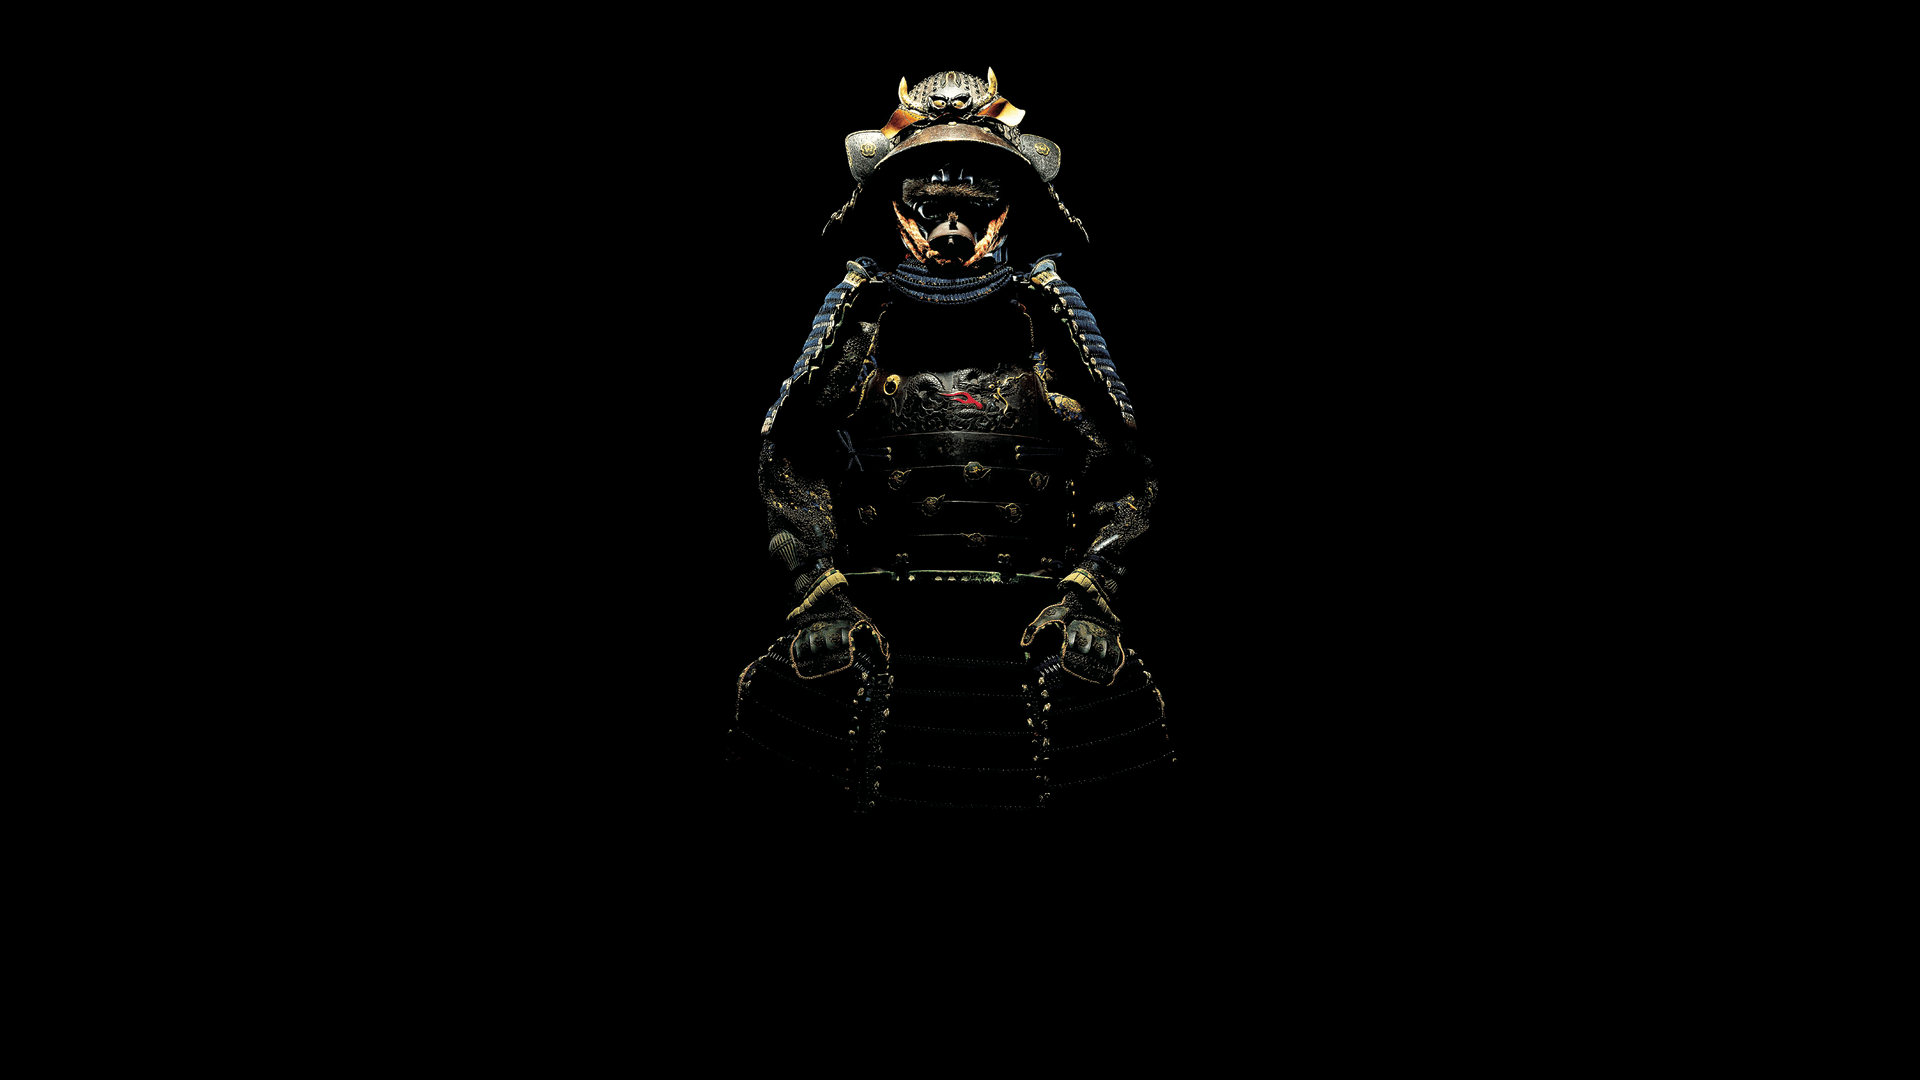 Samurai Armor Wallpapers Top Free Samurai Armor